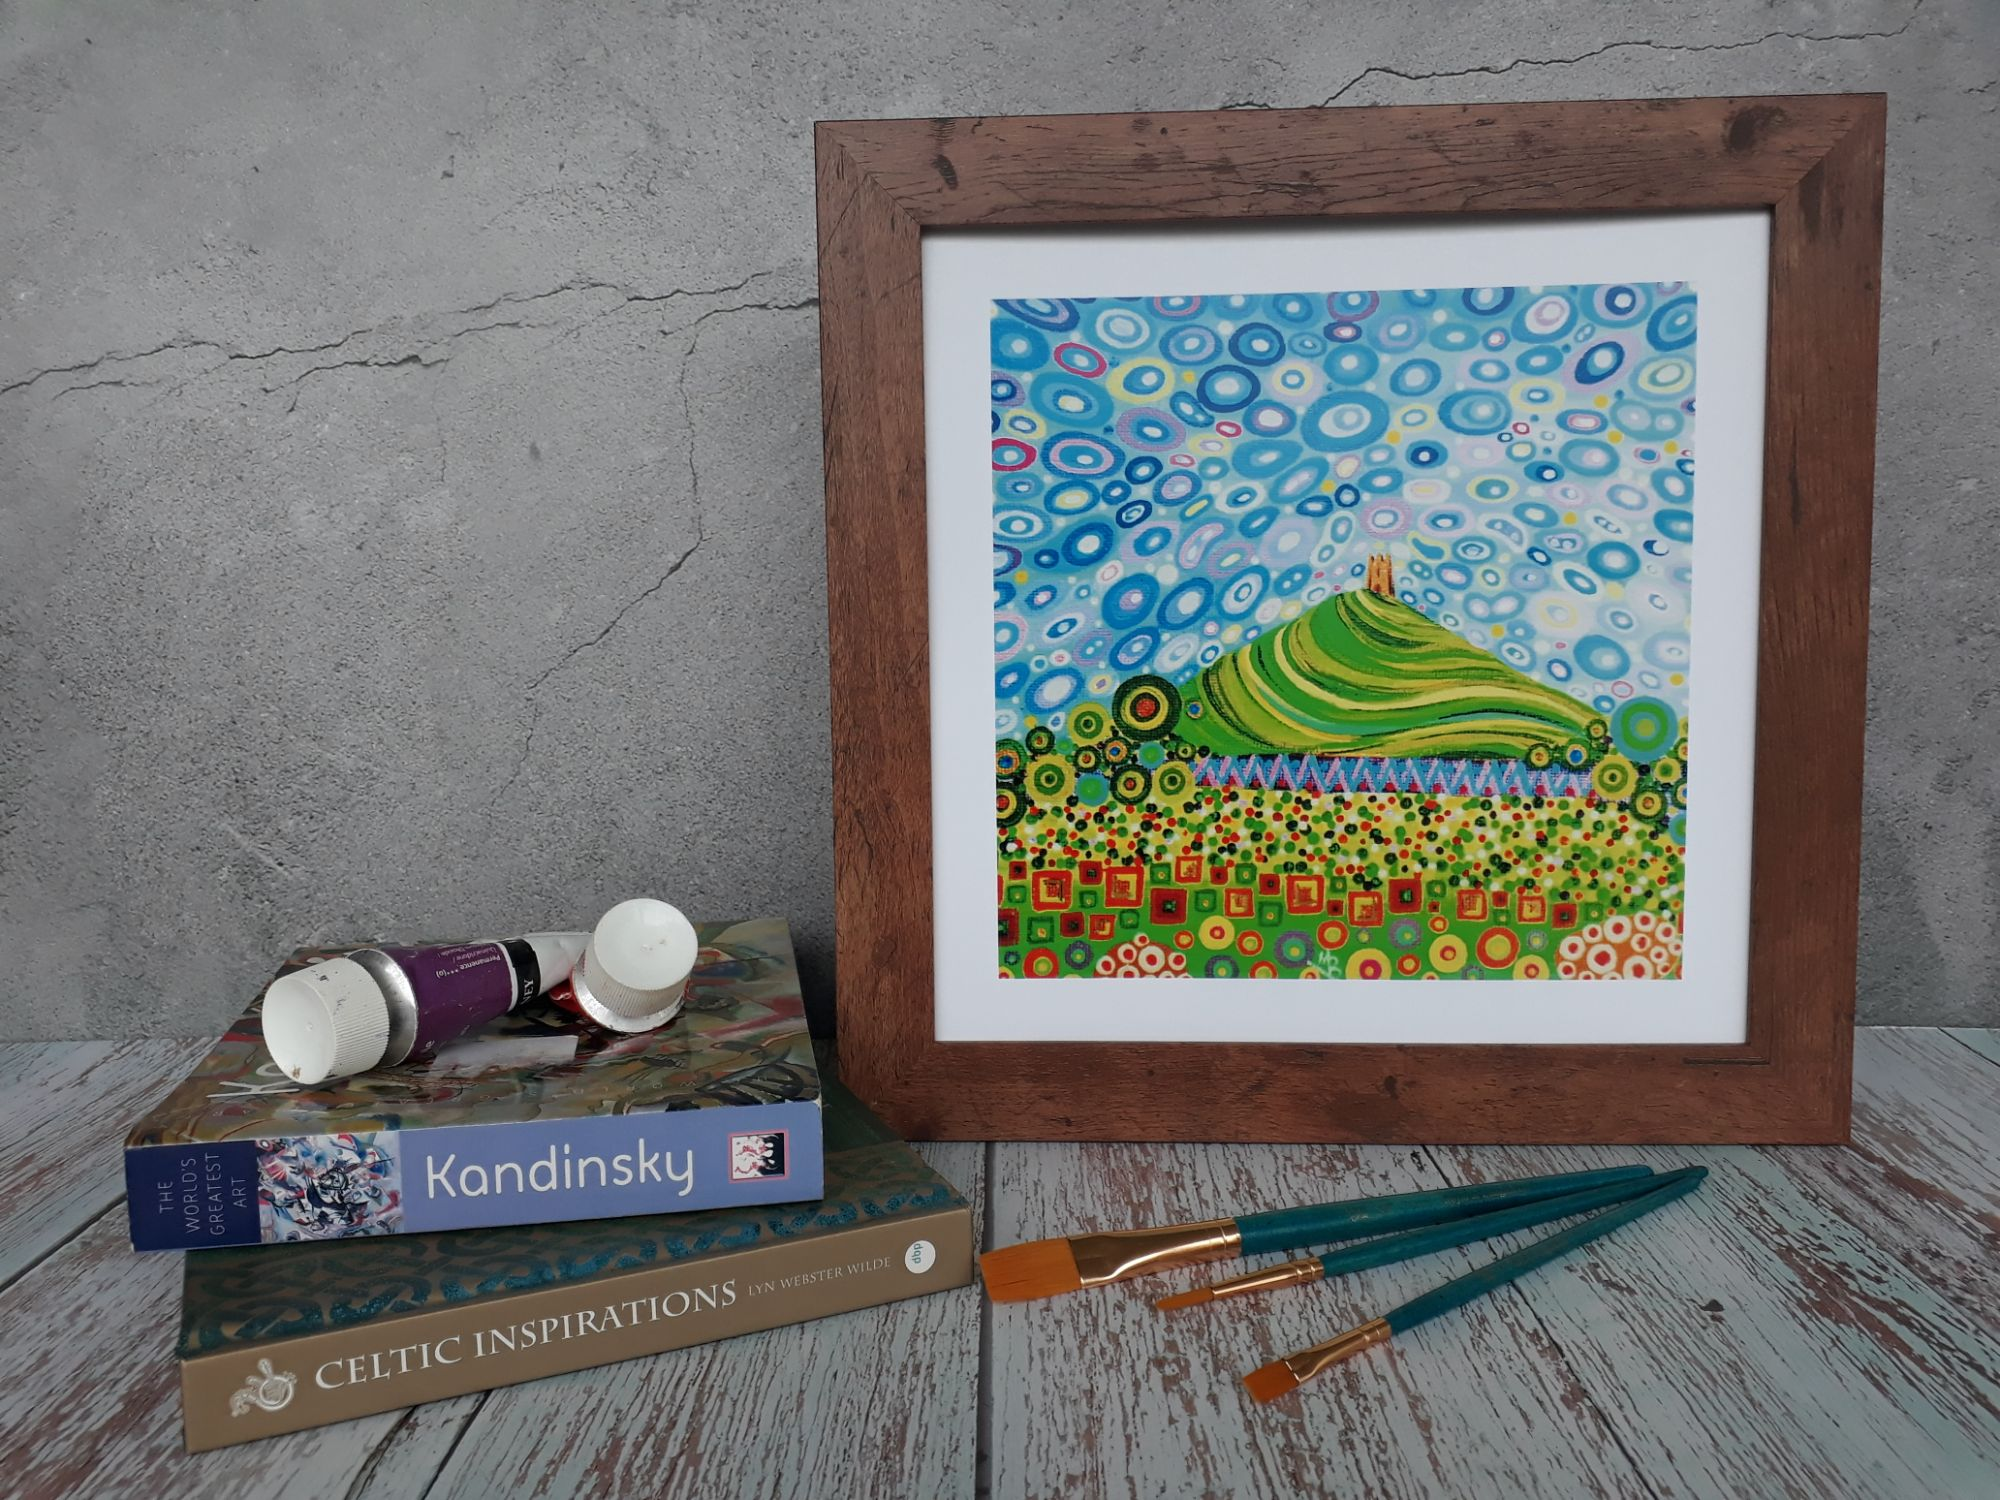 Framed and unframed prints are available in all the designs